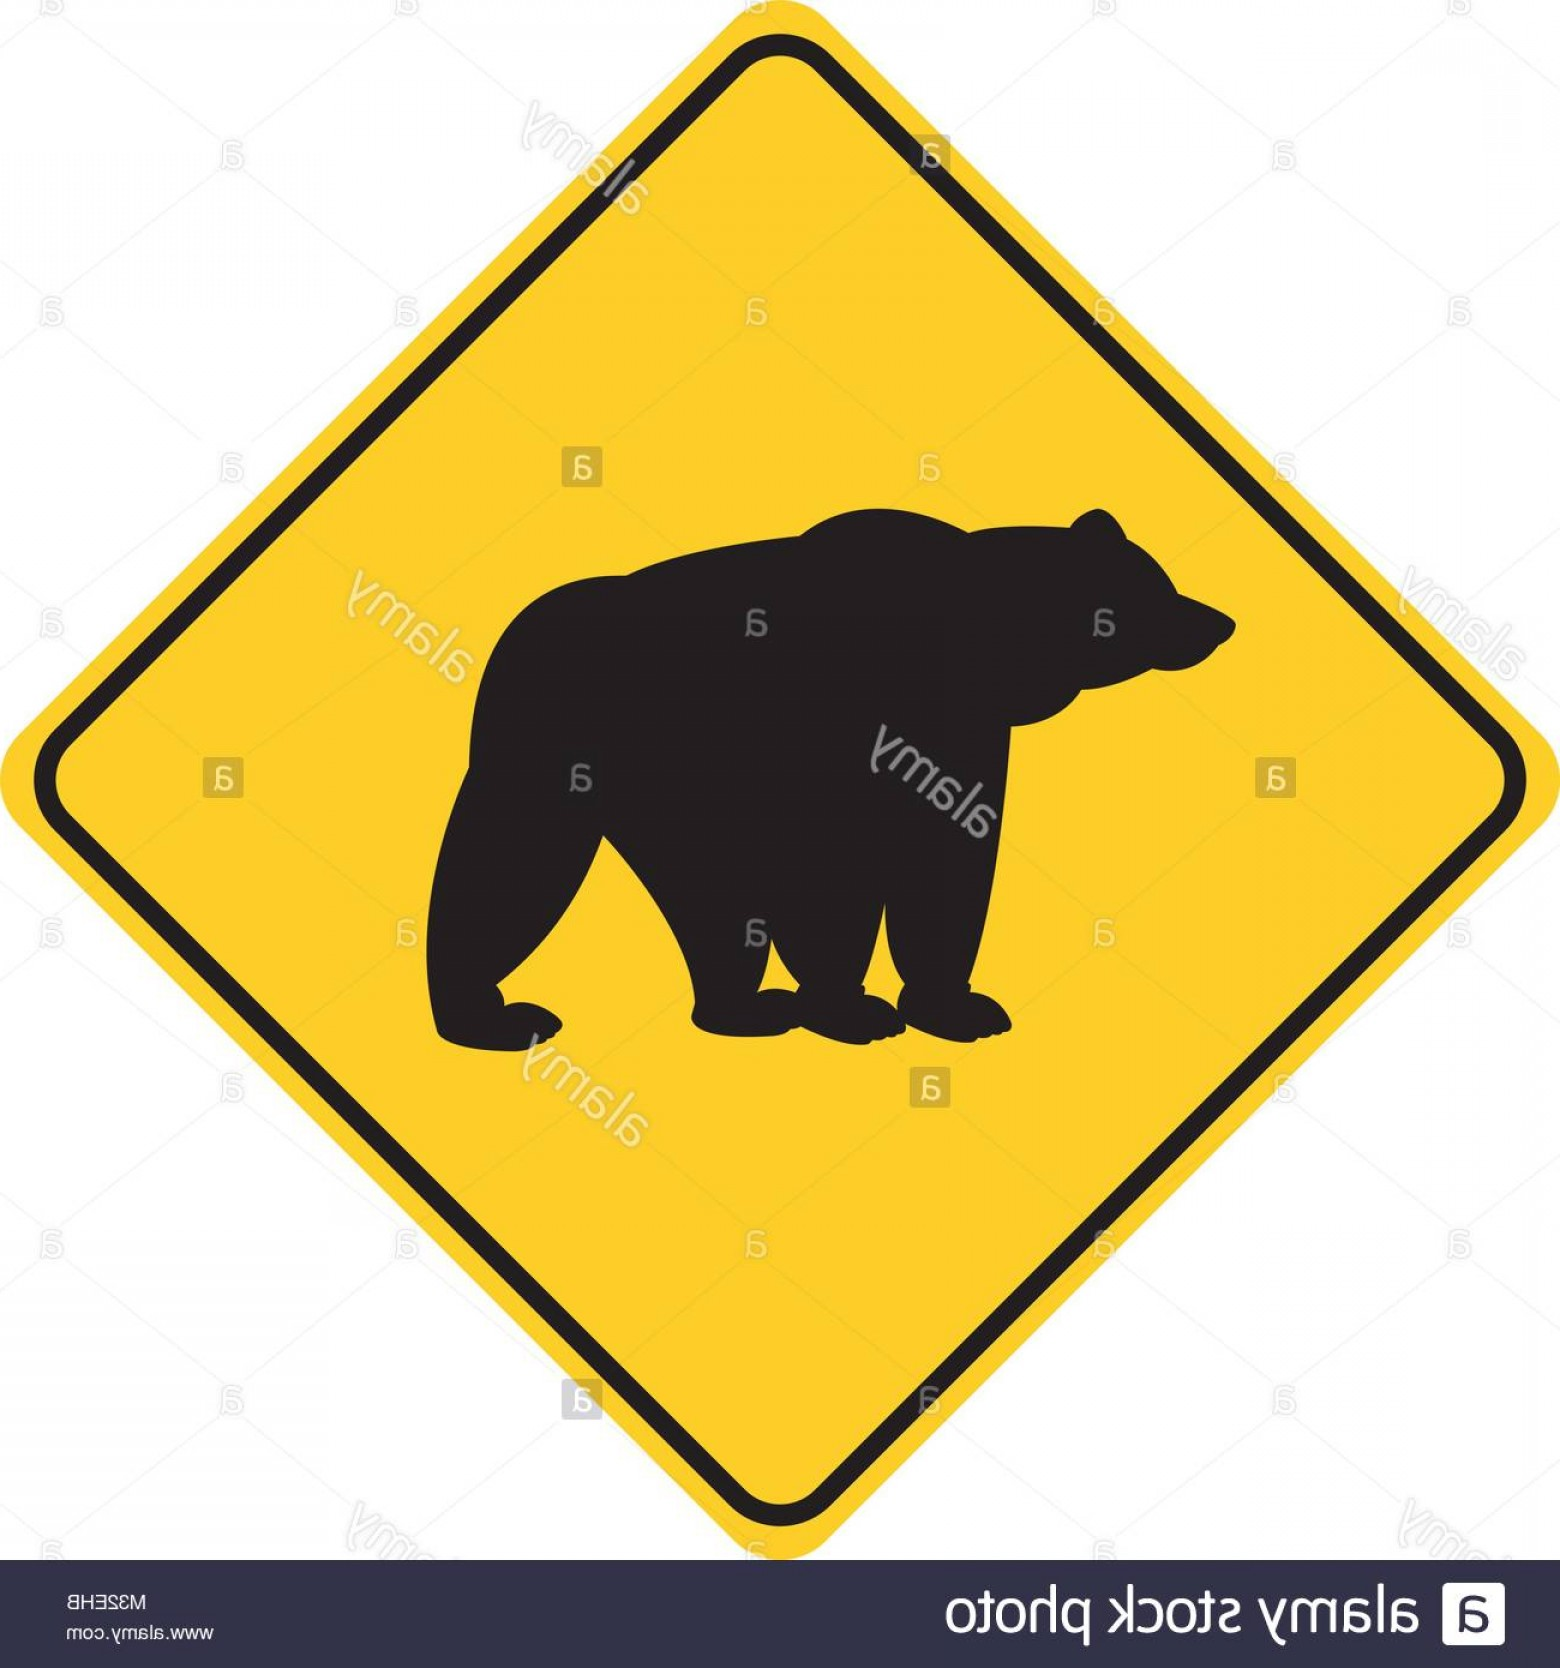 Road Sign Silhouette Vector Bear: Stock Photo Bear Silhouette Animal Traffic Sign Yellow Vector Illustration